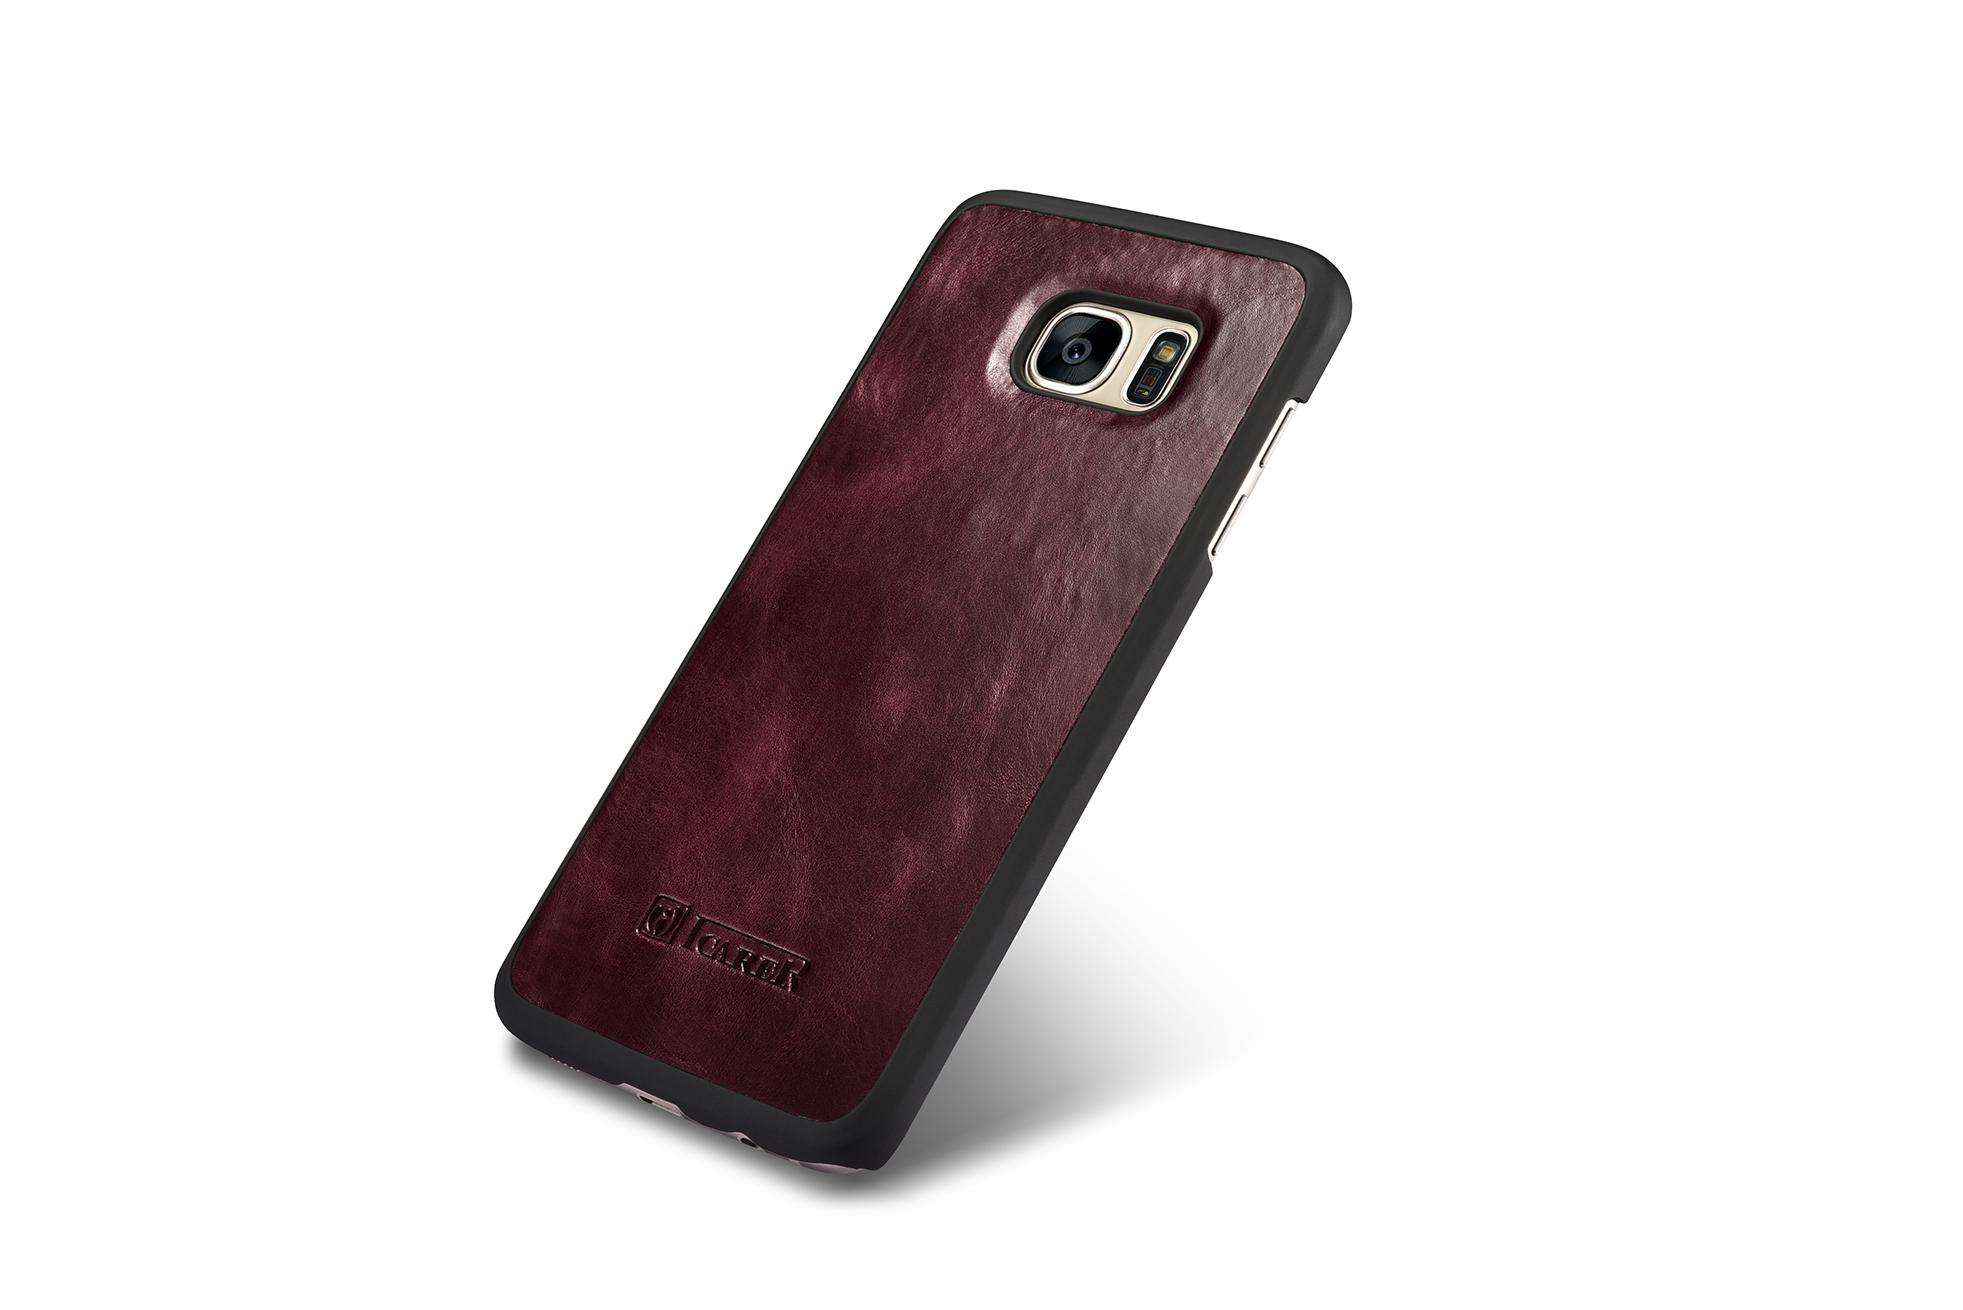 iCarer Samsung Galaxy S7 Edge Leather Detachable 2 in 1 Wallet Folio Case 8